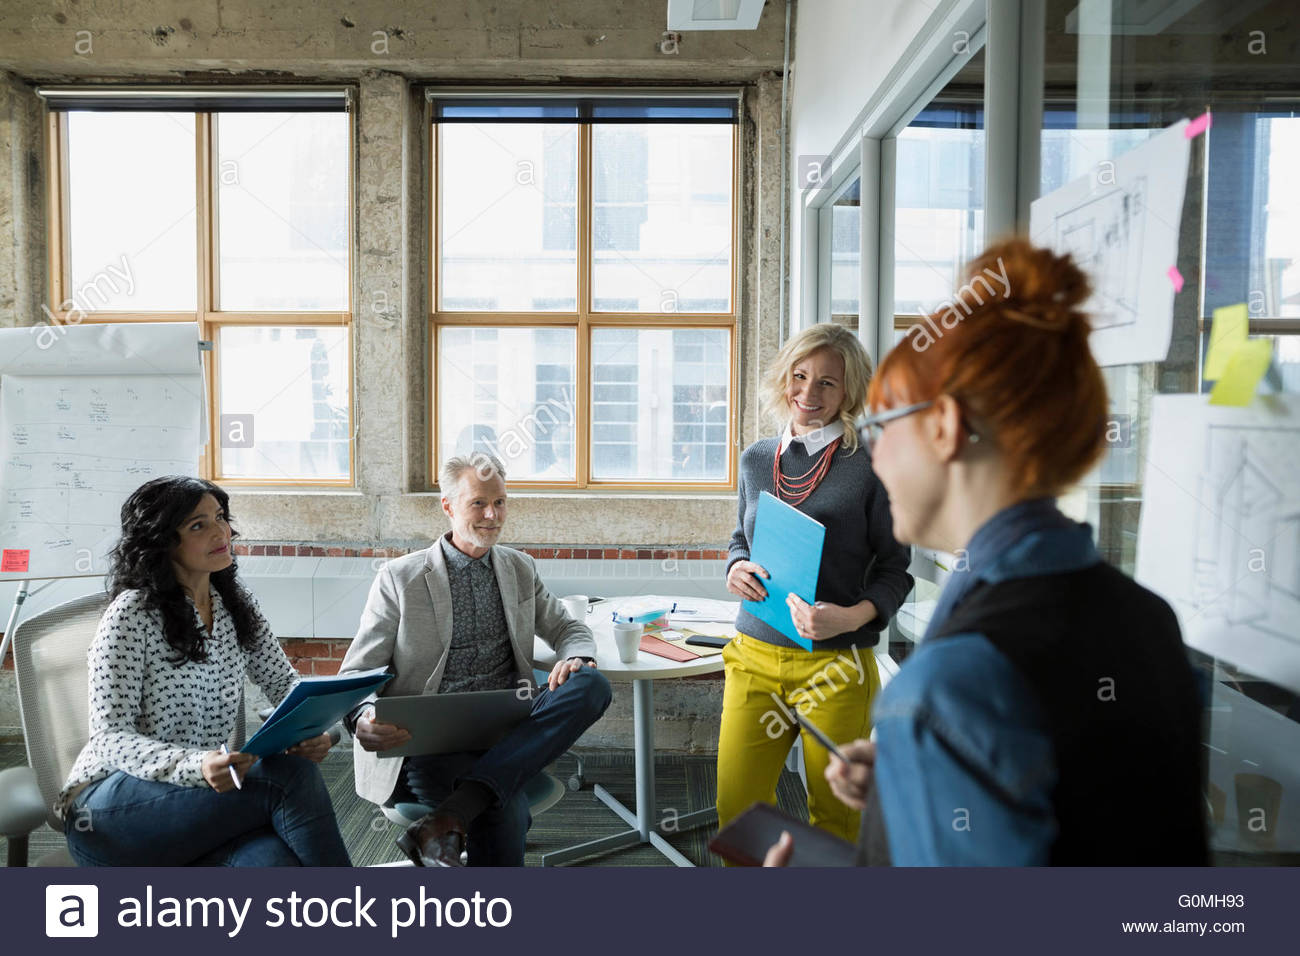 Architects brainstorming in meeting - Stock Image